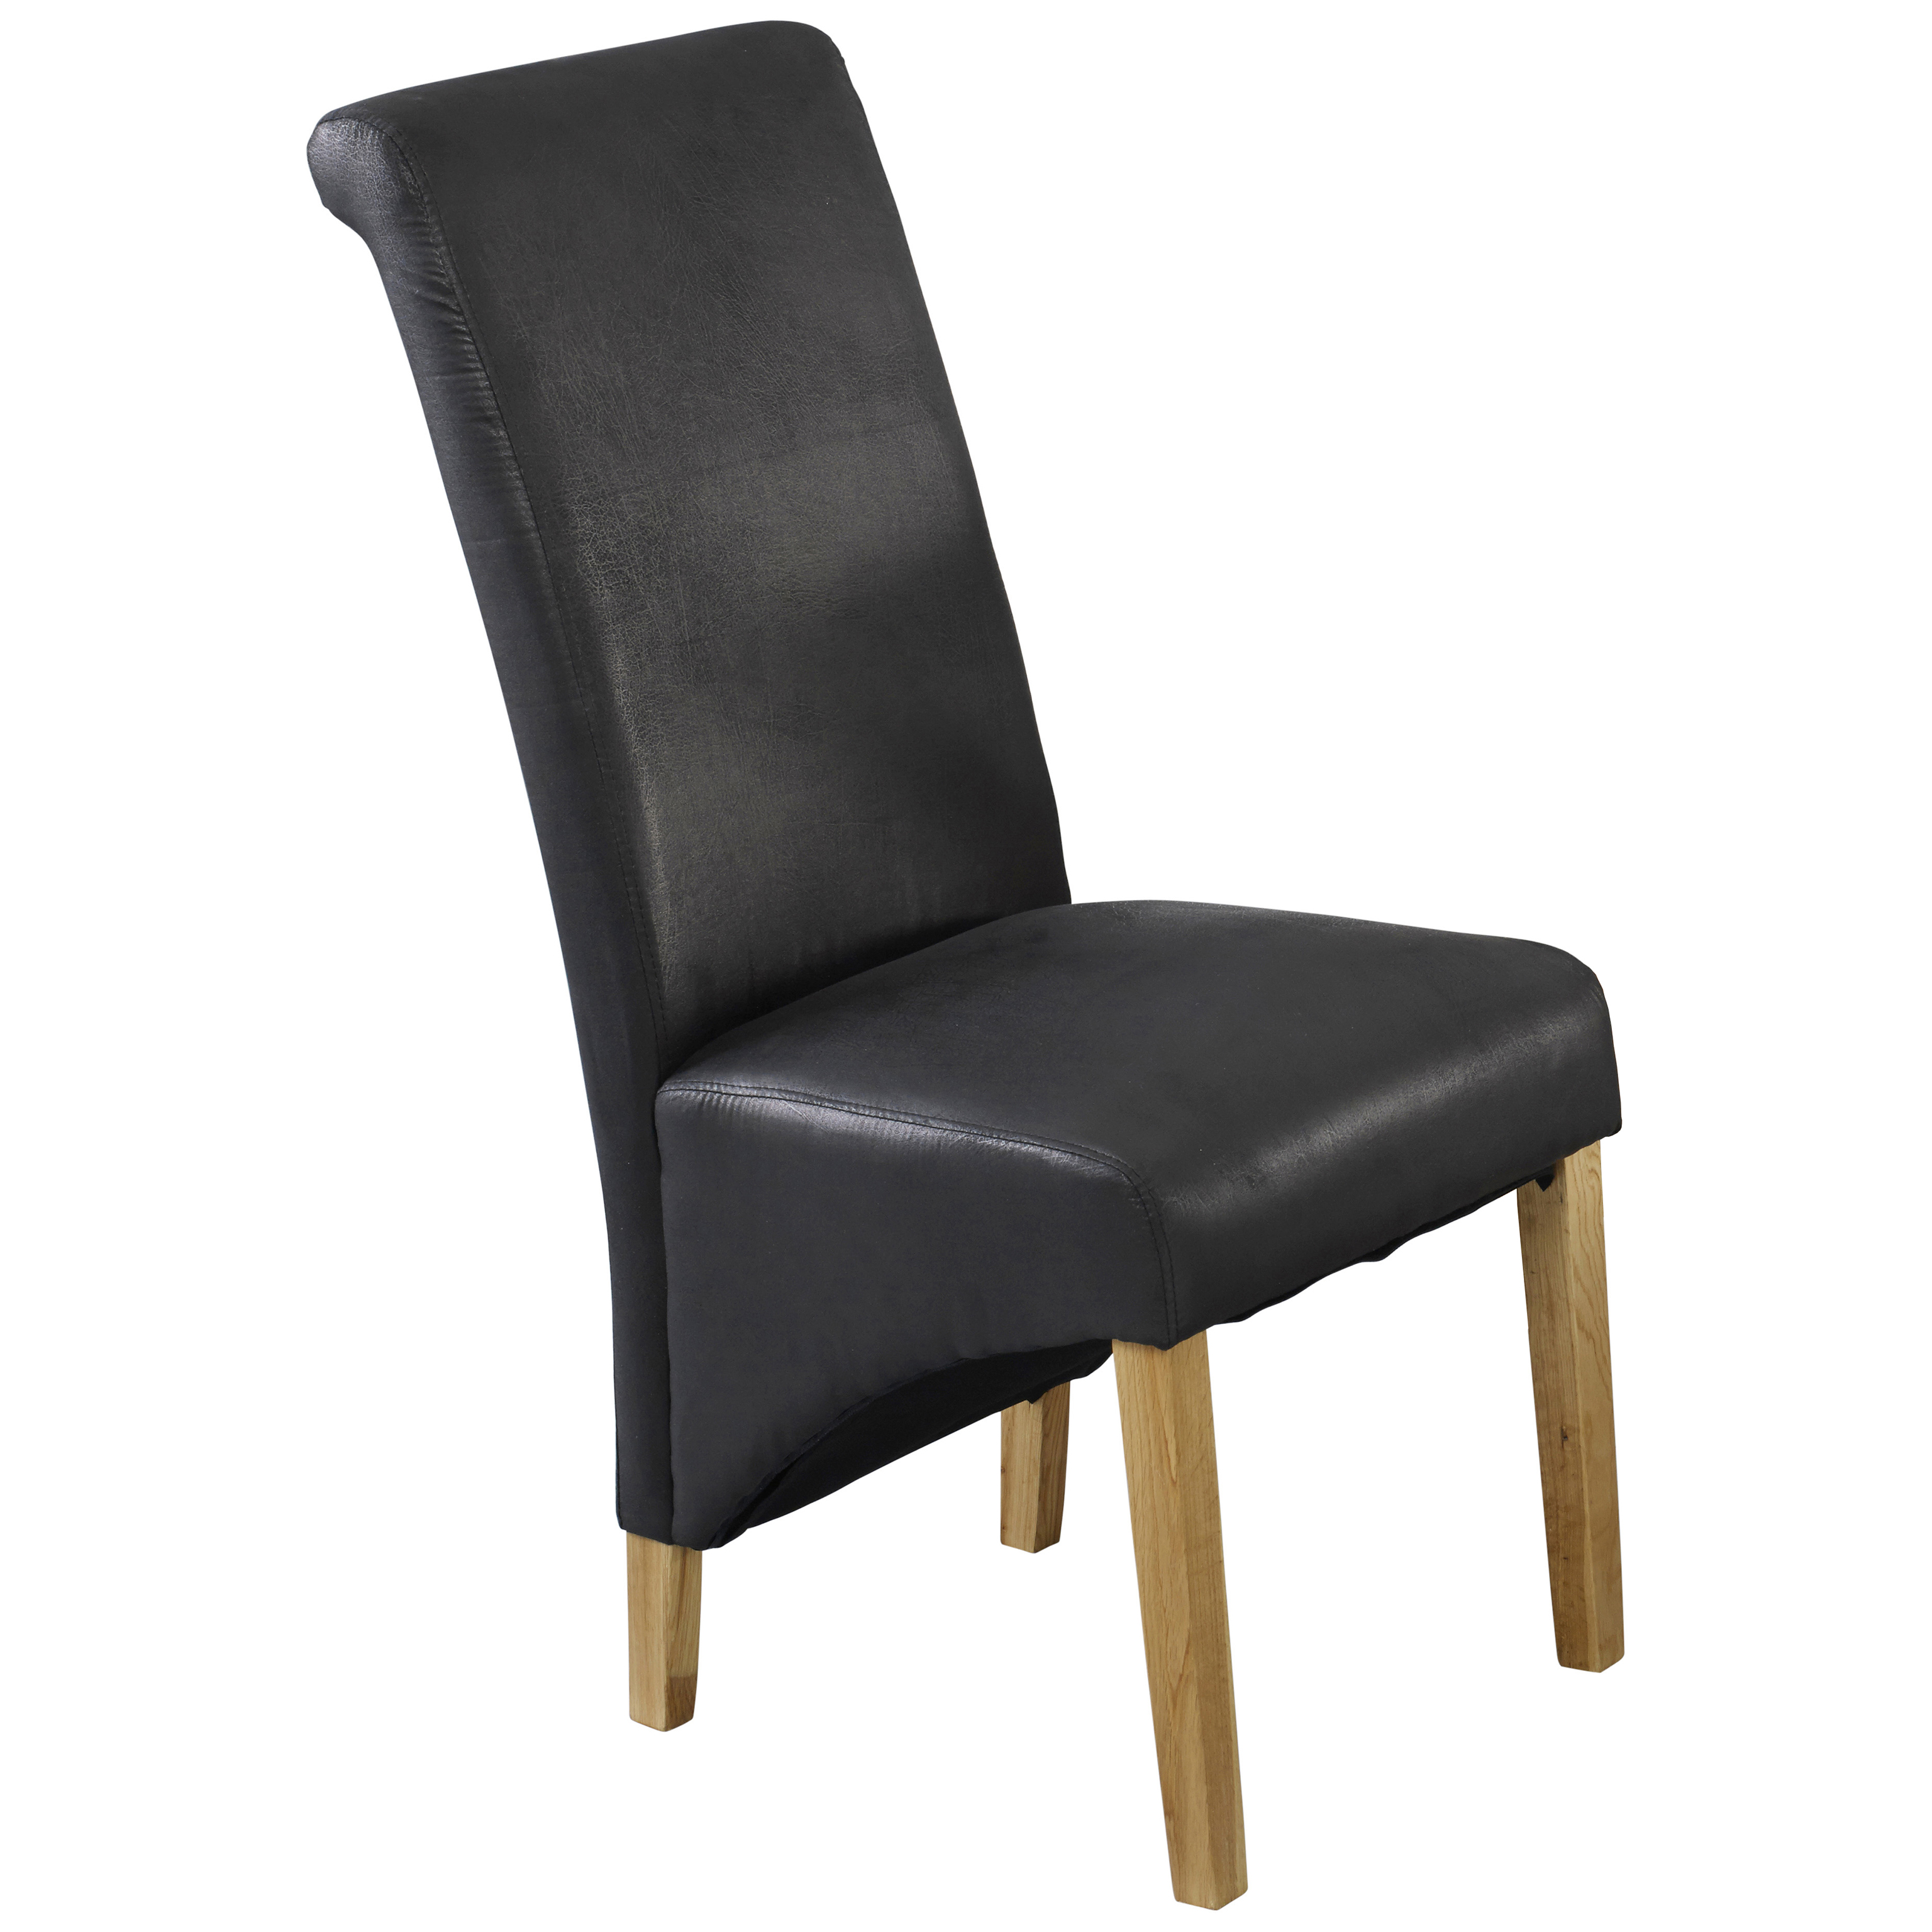 Black Leather Dining Chairs Pack Of 2 Faux Leather Dining Seat Chair Black Brown Ebay